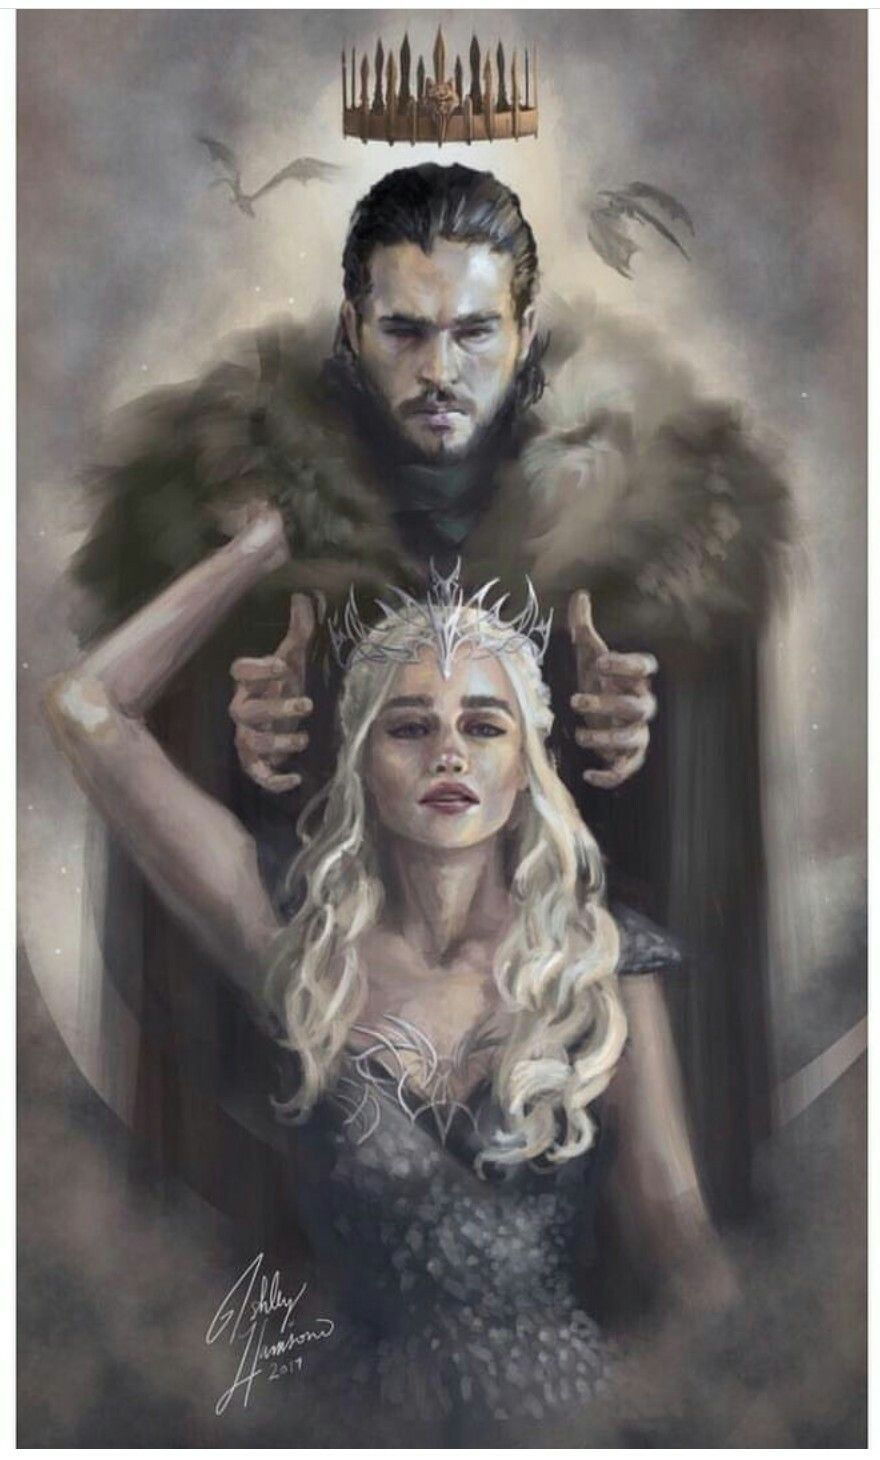 Pin By Cesar Gallardo On Ilustracion De Fantasia In 2020 Jon Snow And Daenerys Game Of Thrones Drawings Game Of Thrones Fans